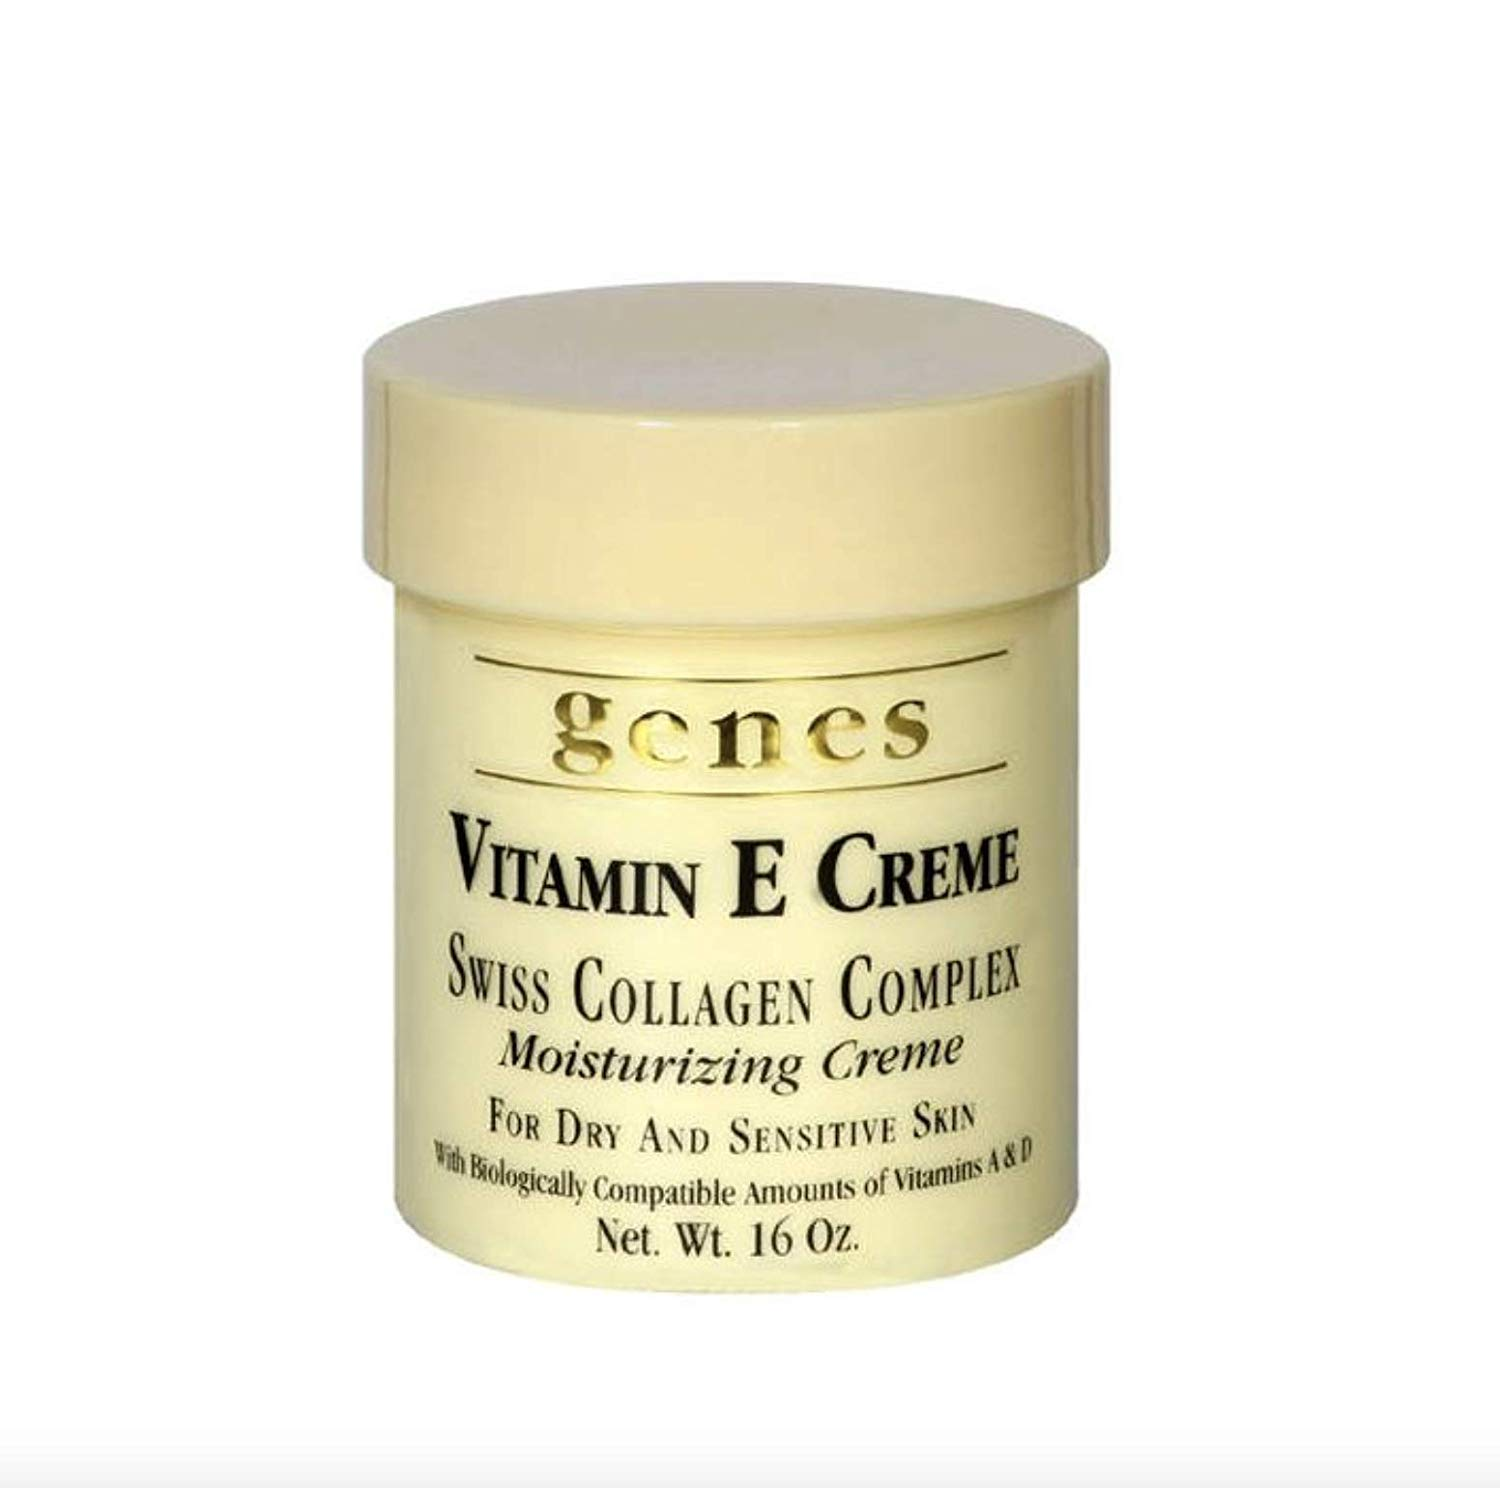 Genes Vitamin E Creme Swiss Collagen Complex Moisturizing Creme for Dry and Sensitive Skin 16 oz (2 Pack (16 oz.))